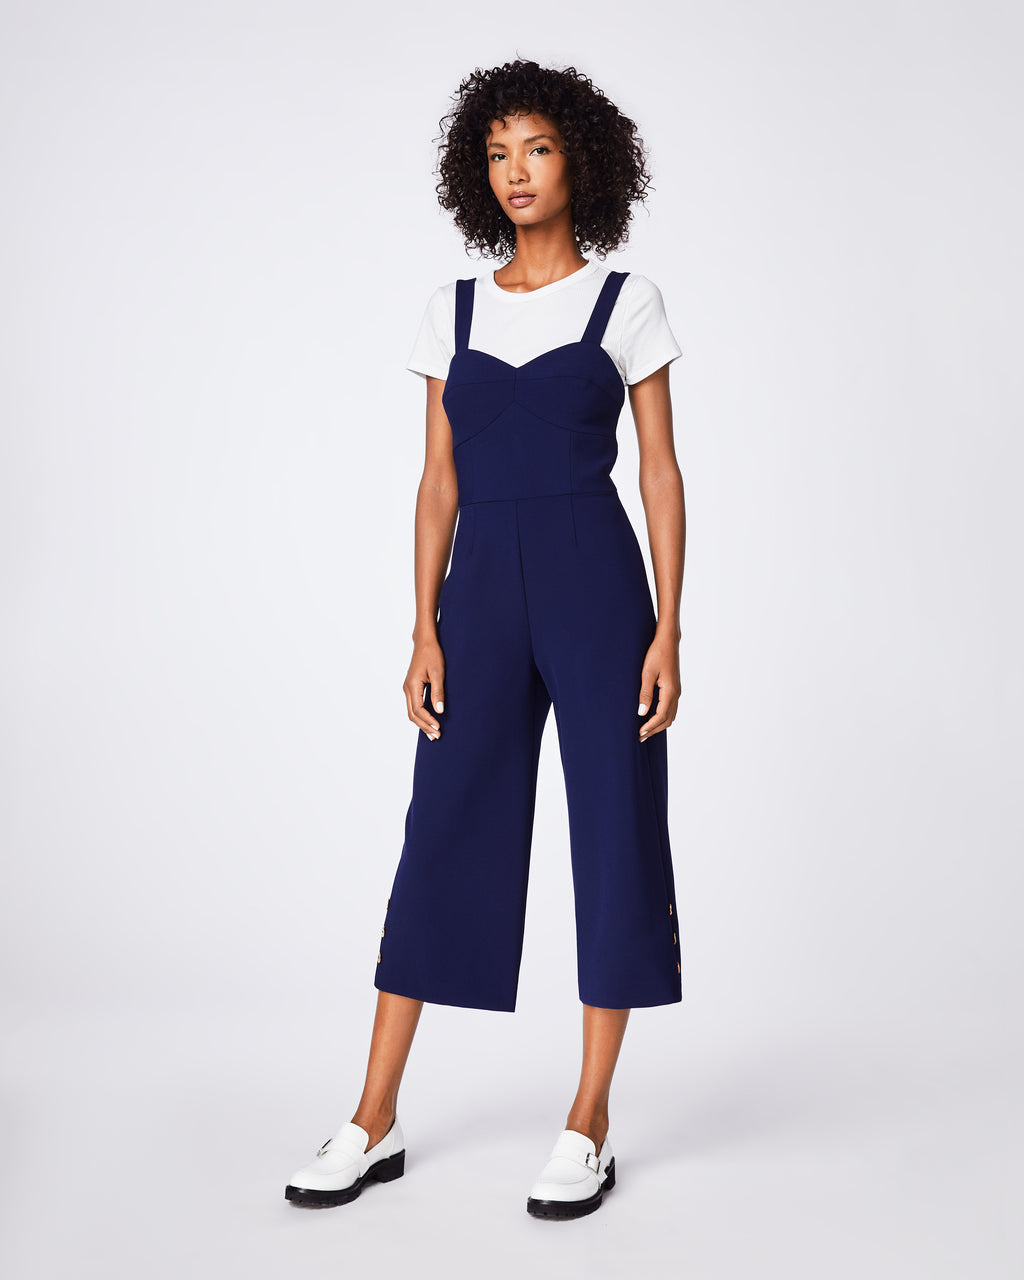 BQ10345 - STRETCHY TECH JUMPSUIT - bottoms - pants - YOUR BOSS JUMPSUIT IS HERE. THIS NAVY, STRETCHY PIECE FEATURES GOLD BUTTONS AT THE LEGS AND A FITTED WAIST. PAIR WITH A T-SHIRT FOR THE AFTERNOON OR WEAR SOLO FOR EVENING. EXPOSED BACK ZIPPER.